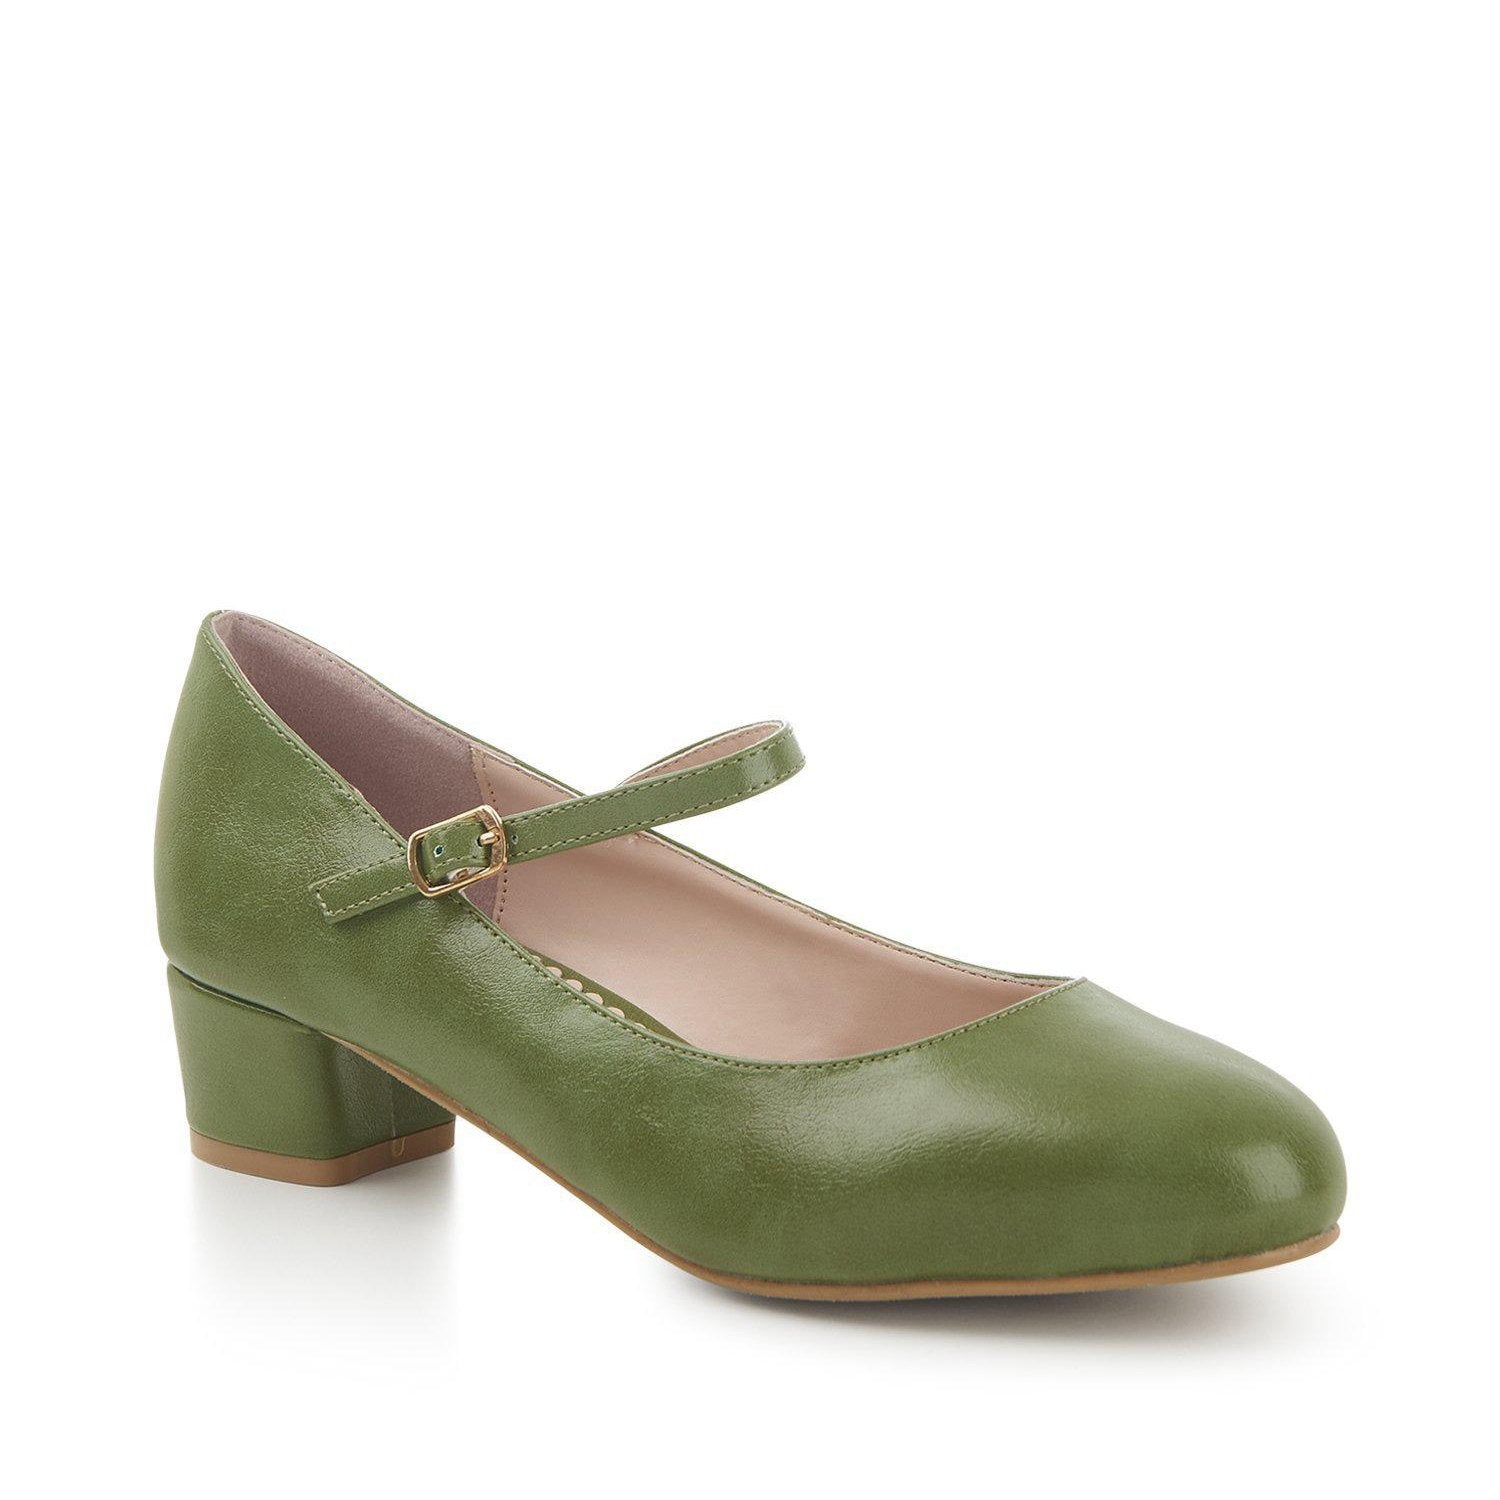 Lulu Hun Maryjane Block Heel Shoes Green-Green-Vendemia